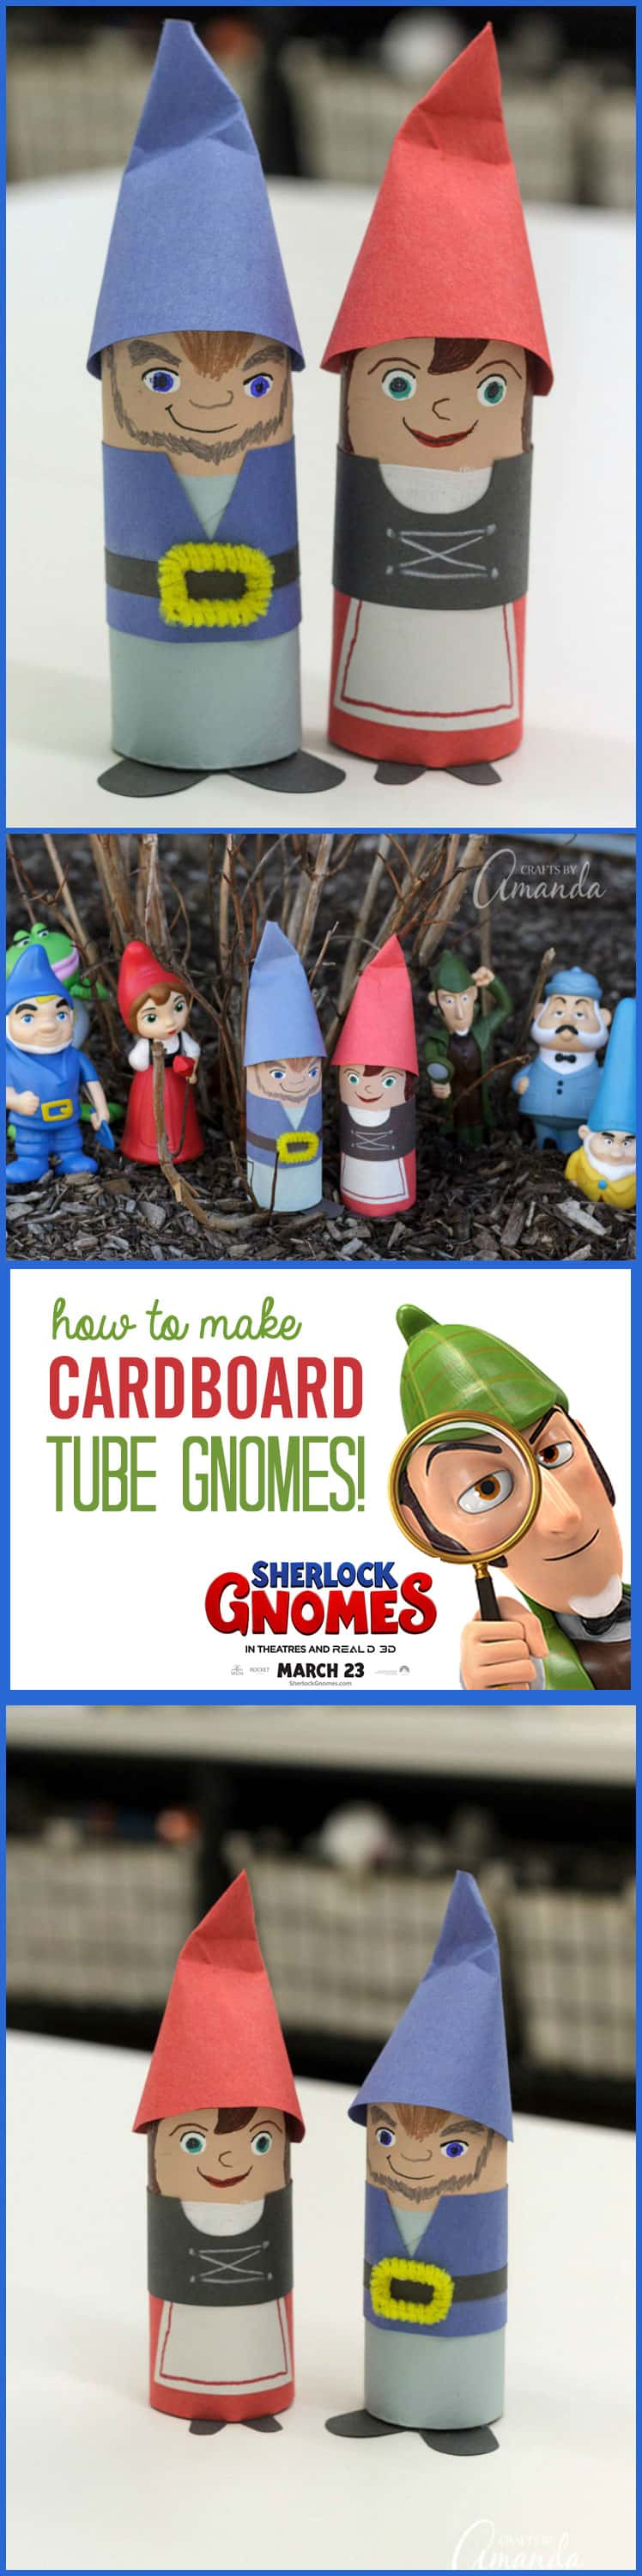 Get the kids together to make Gnomeo and Juliet, adorable cardboard tube garden gnomes from the new filk #SherlockGnomes in theaters March 23, 2018! #ad